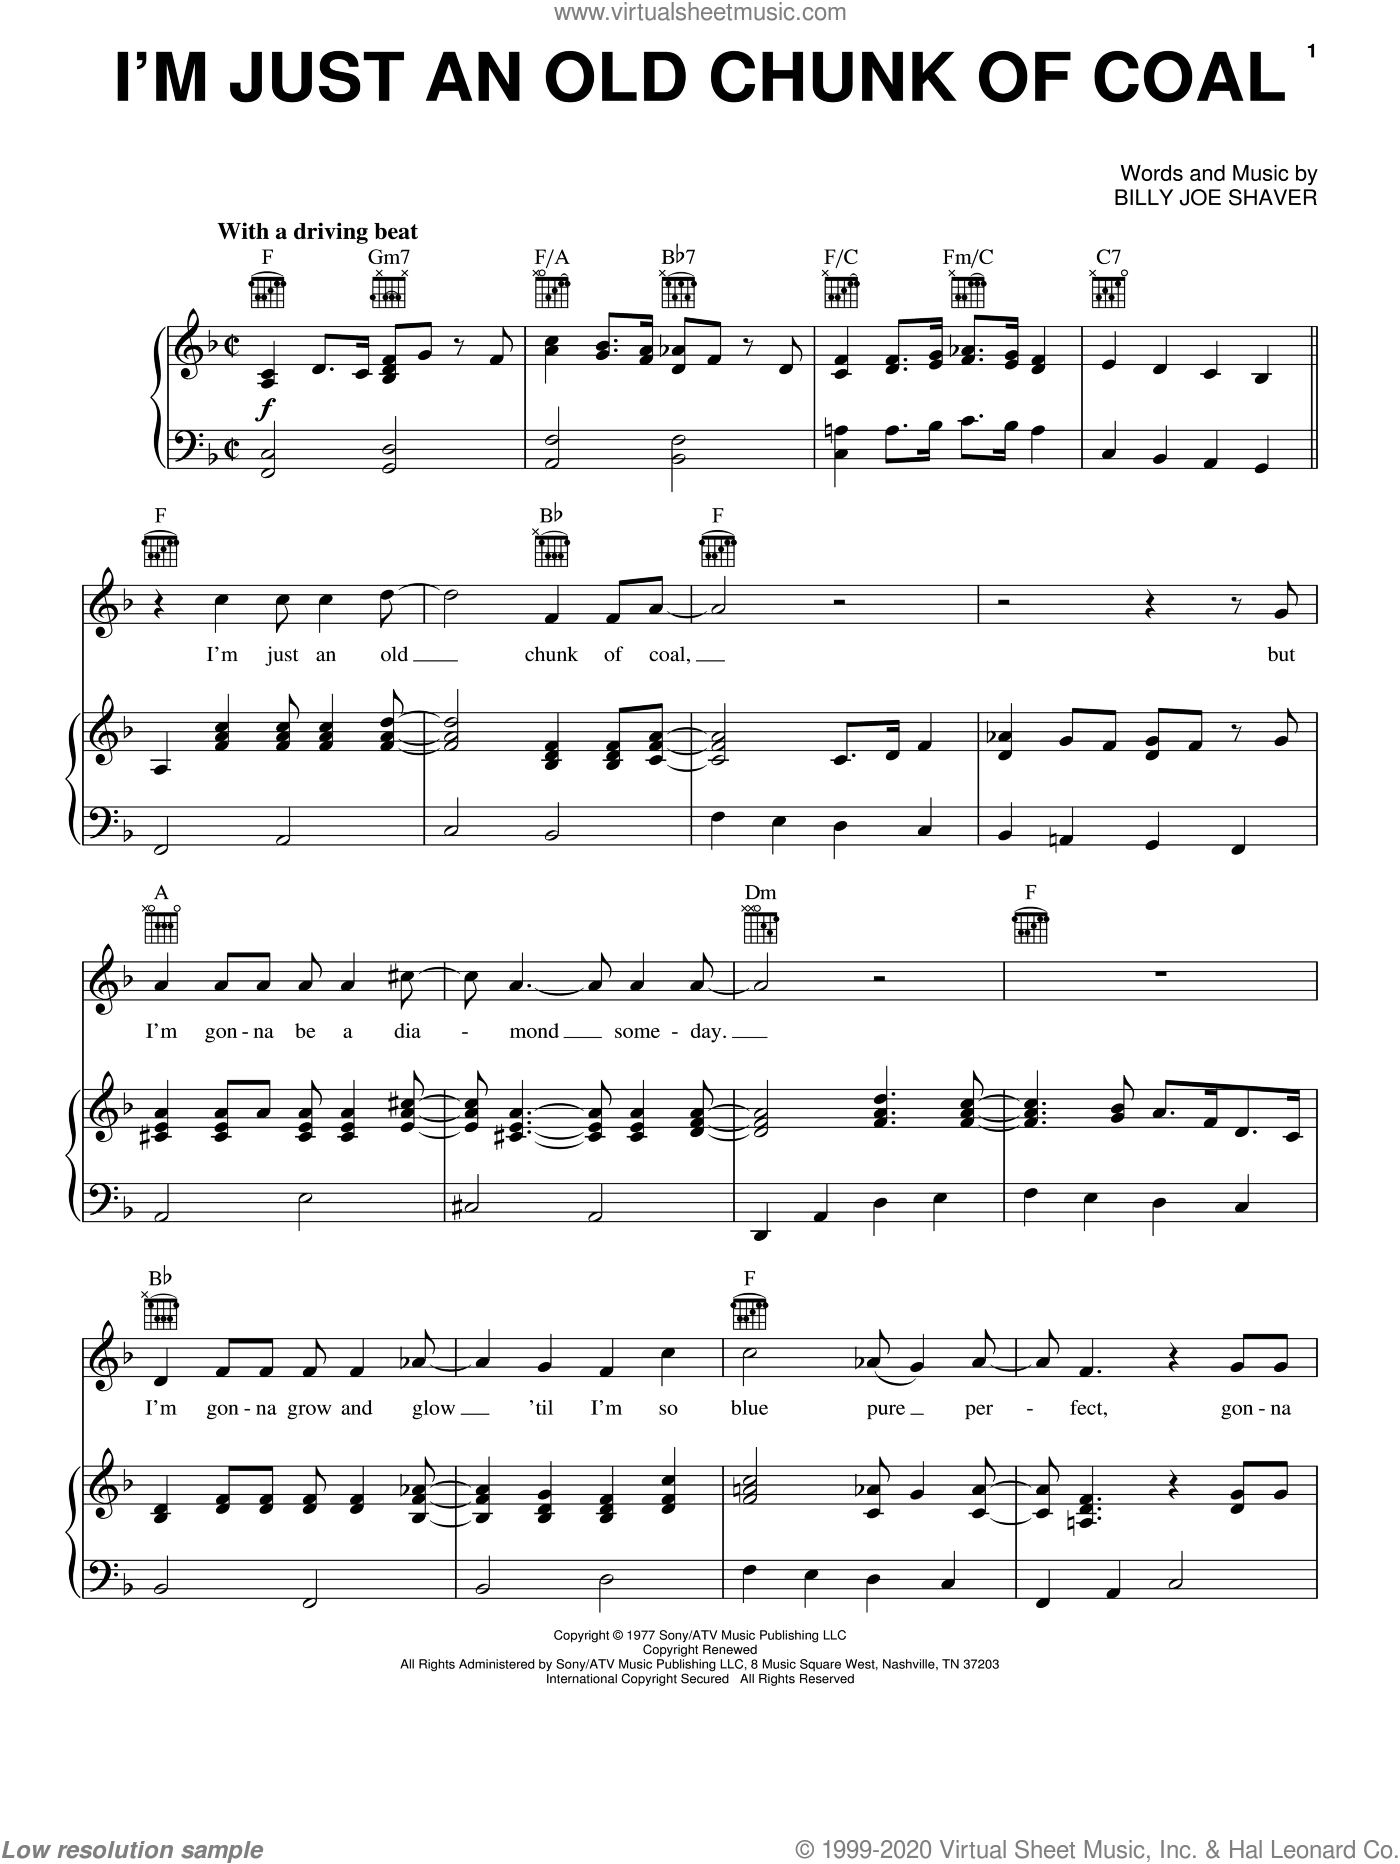 I'm Just An Old Chunk Of Coal sheet music for voice, piano or guitar by Billy Joe Shaver and John Anderson, intermediate skill level